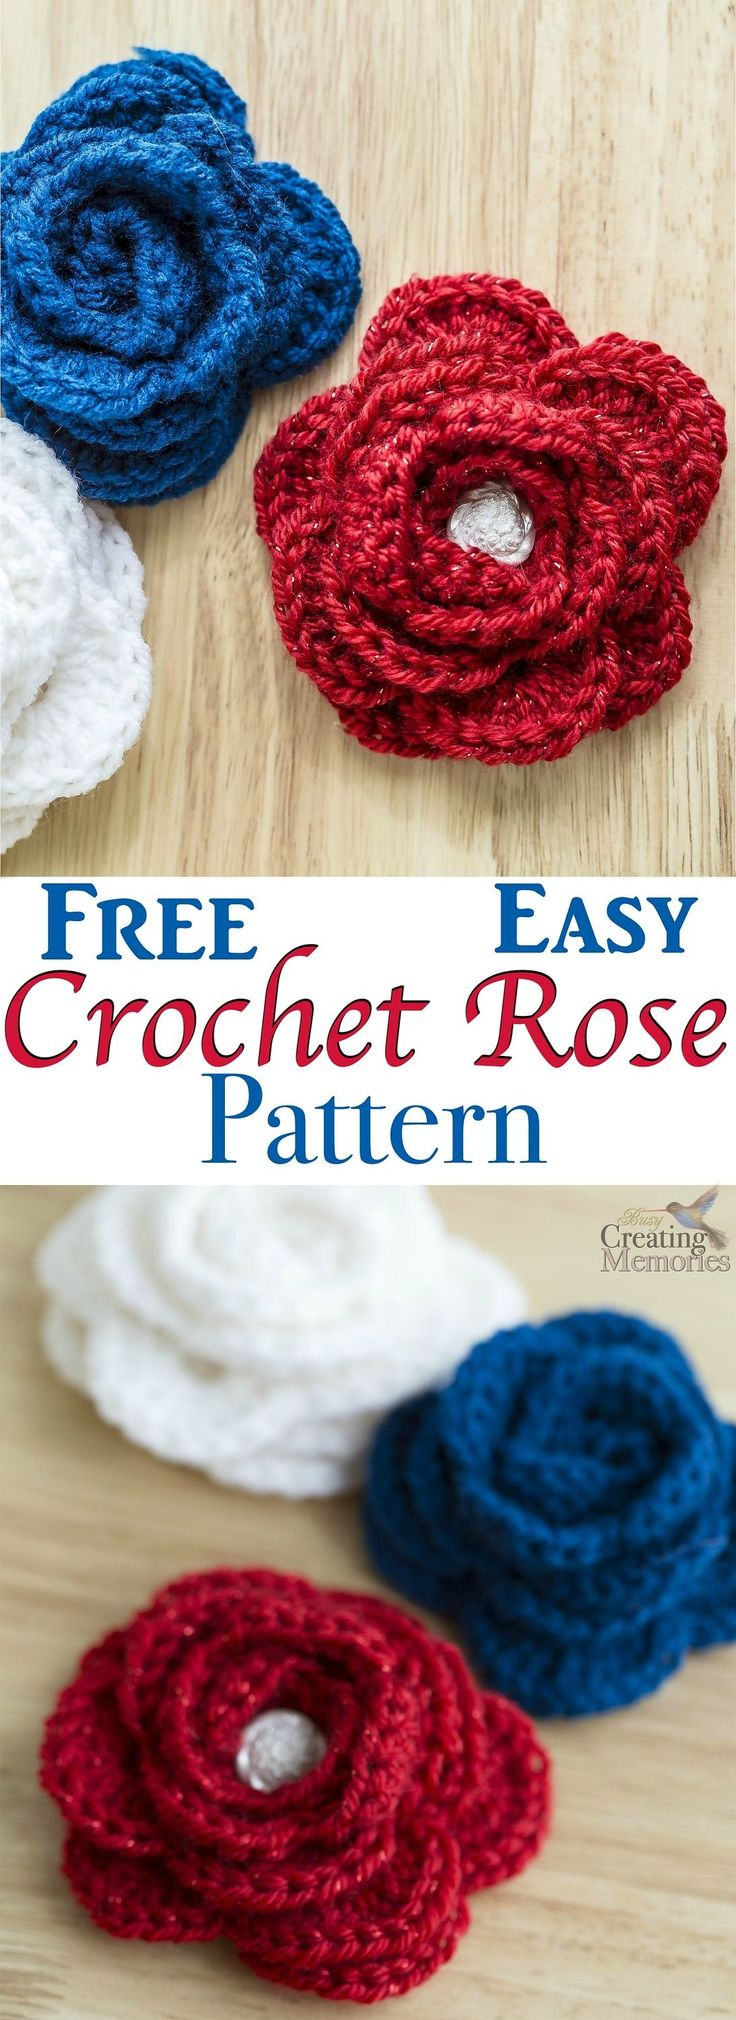 Beginner Left Handed Crochet Patterns : 25+ best ideas about Easy Crochet Headbands on Pinterest ...